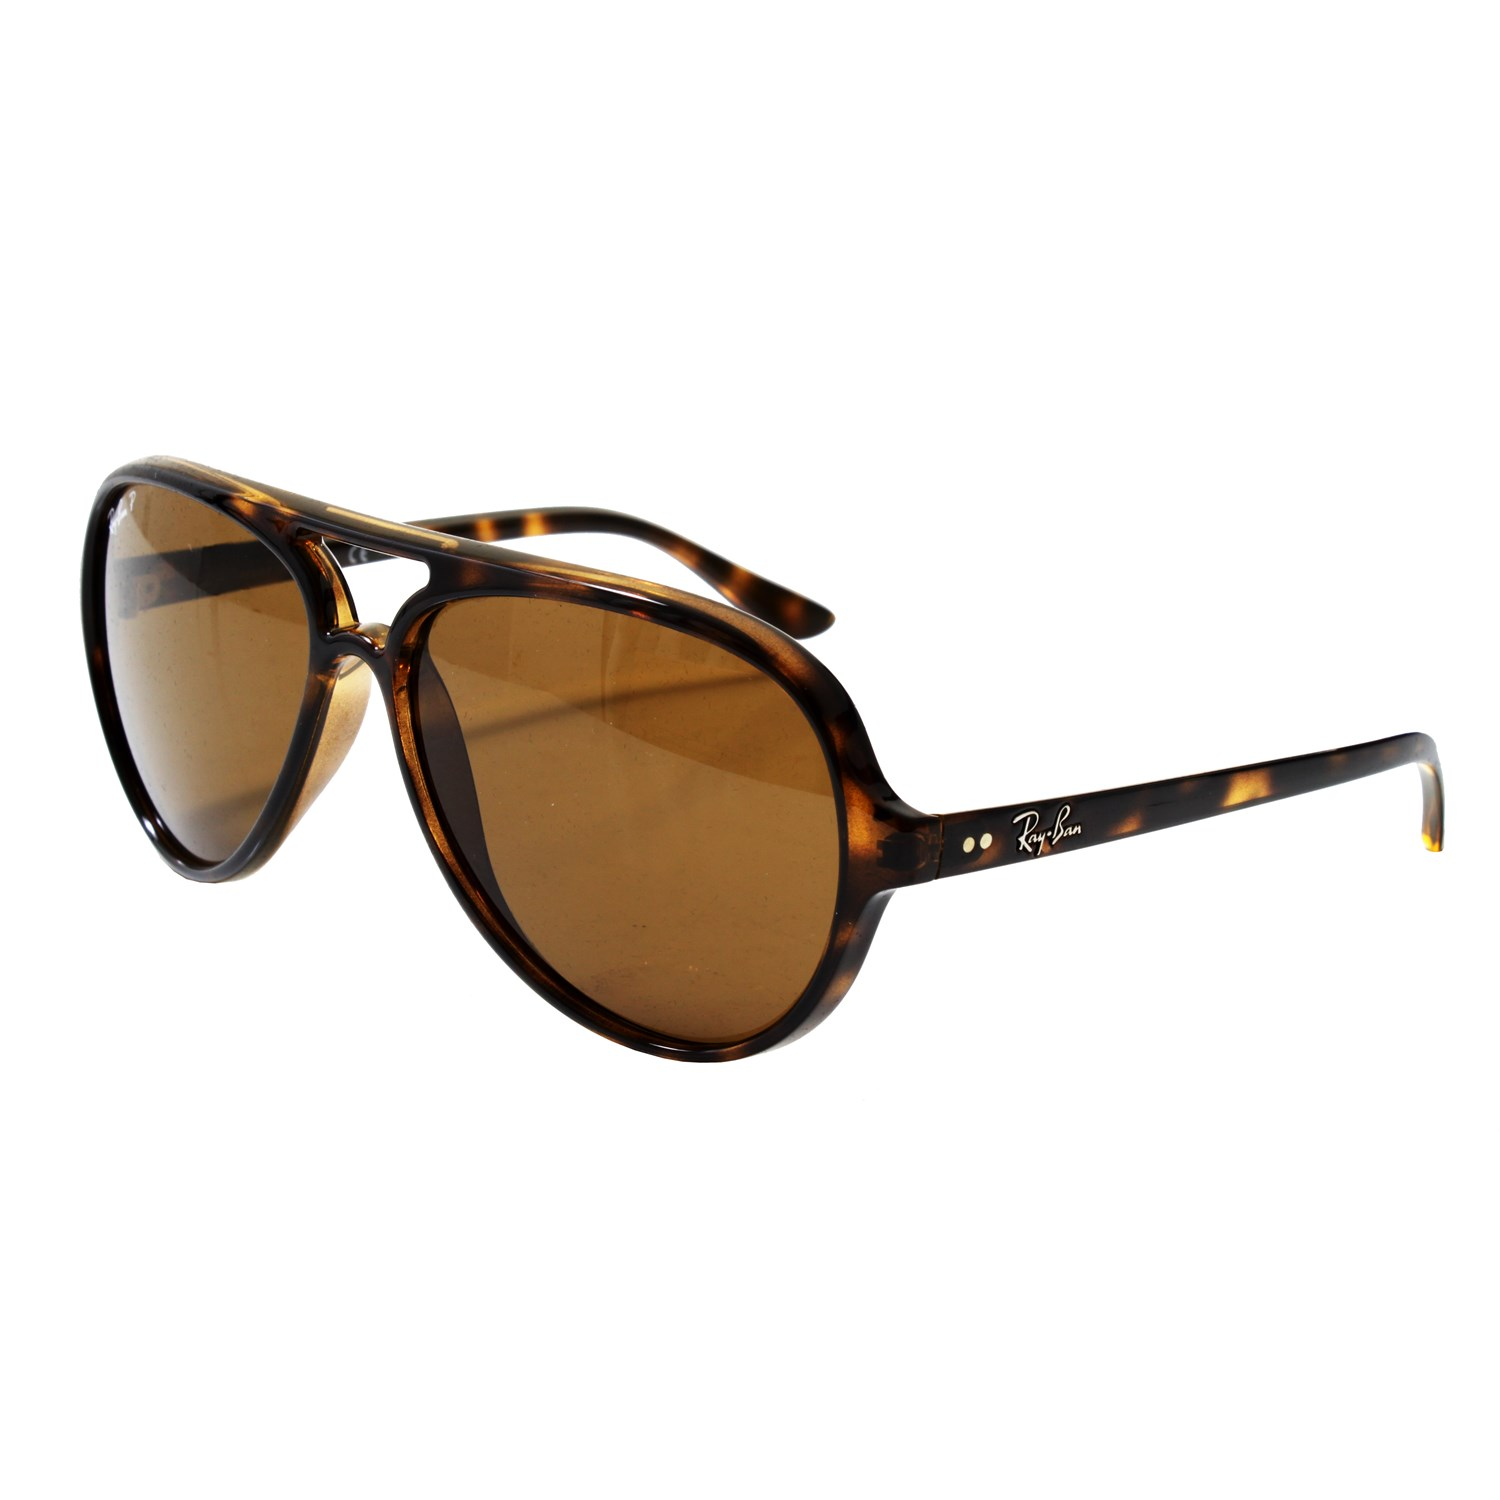 06345cd224fa37 ... czech ray ban rb 4125 cats 5000 polarized sunglasses evo c7759 d3b57